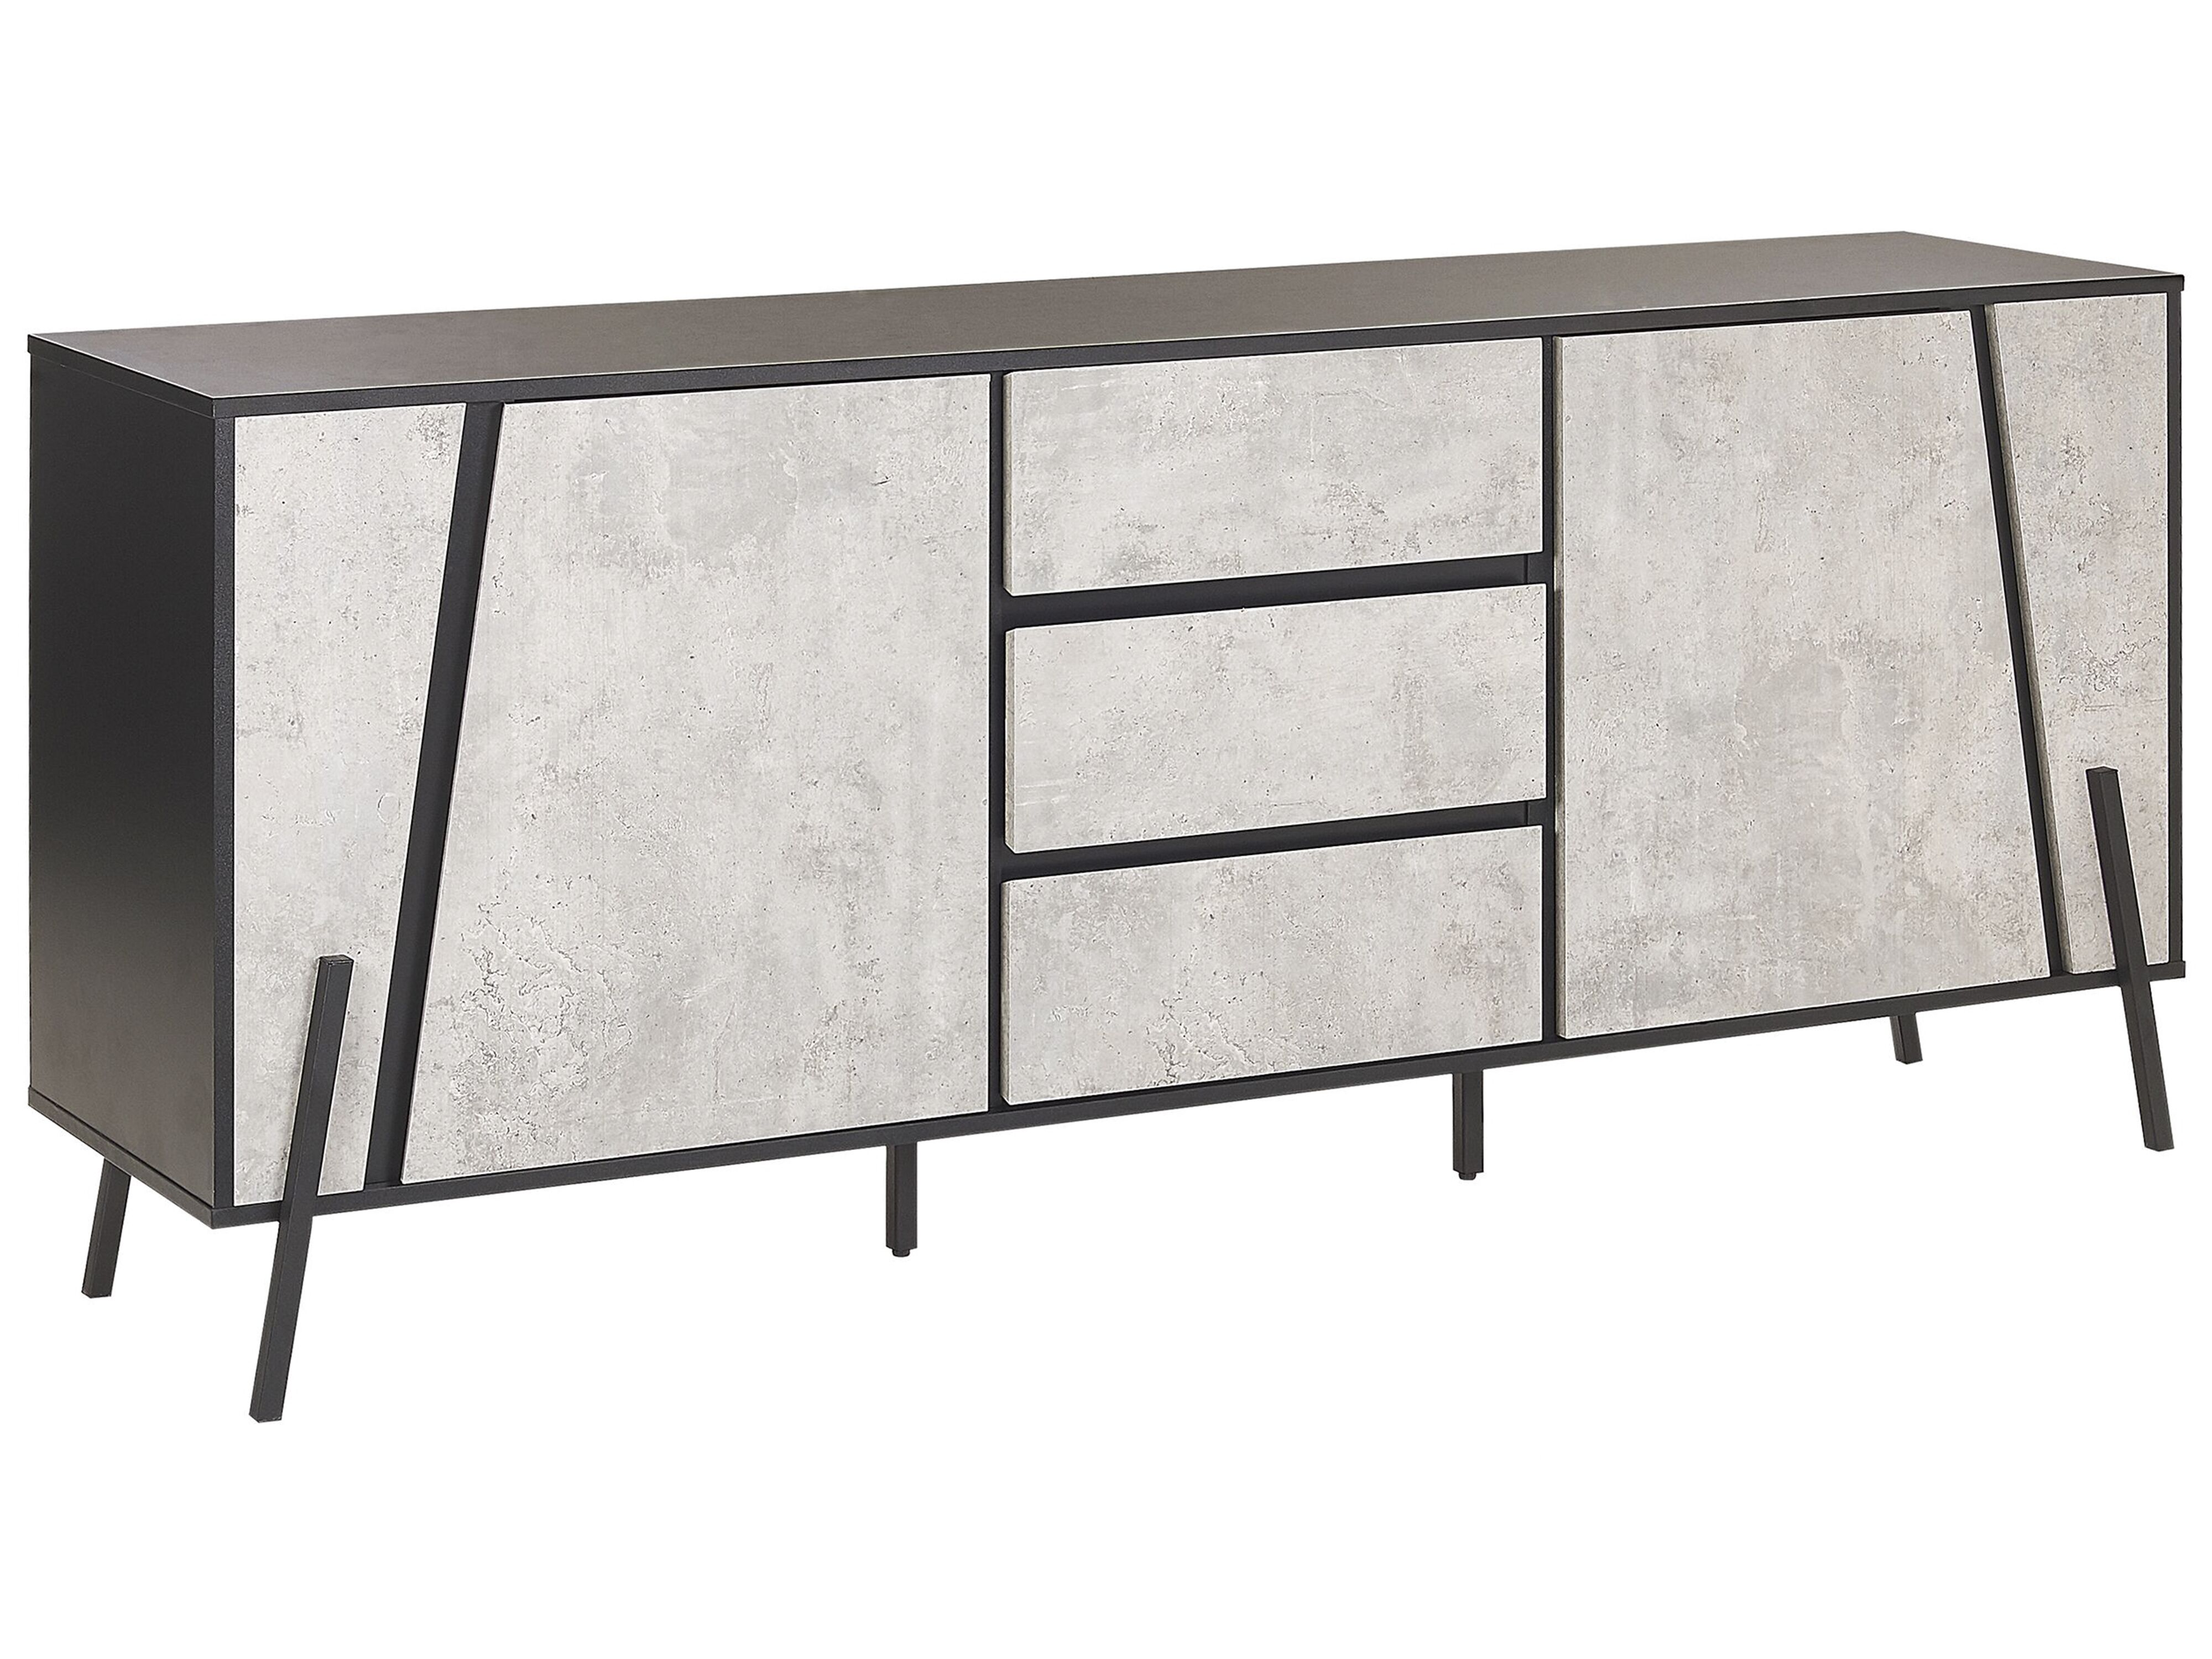 Sideboard Betonoptik 3 Drawer Sideboard Concrete Effect With Black Blackpool | Beliani.co.uk